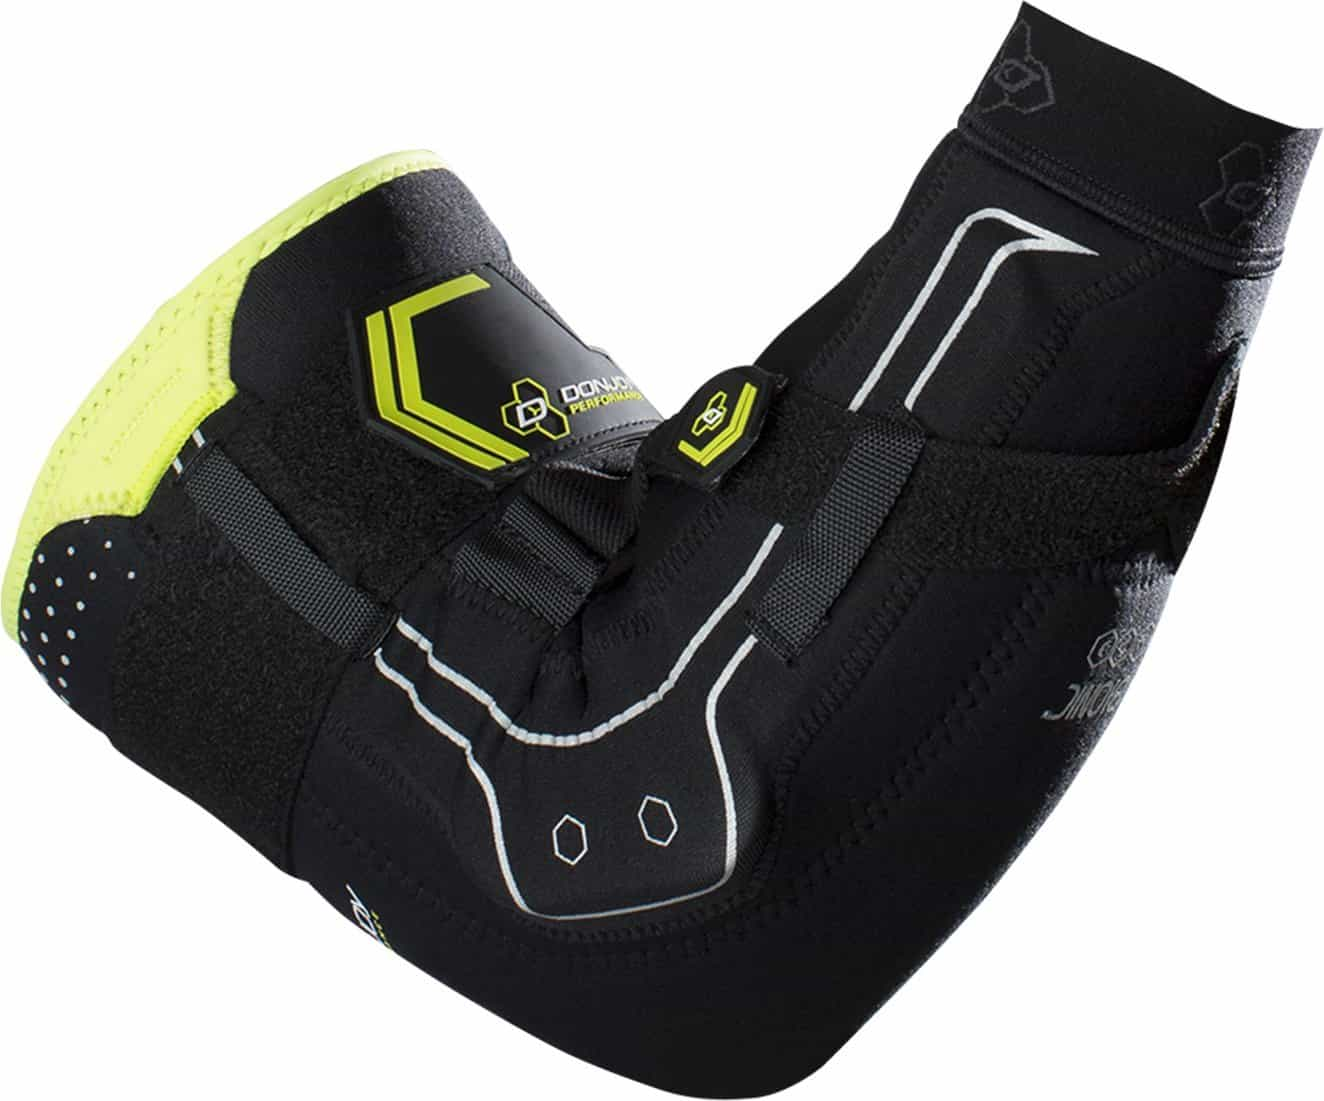 Donjoy Performance bionic elbow support